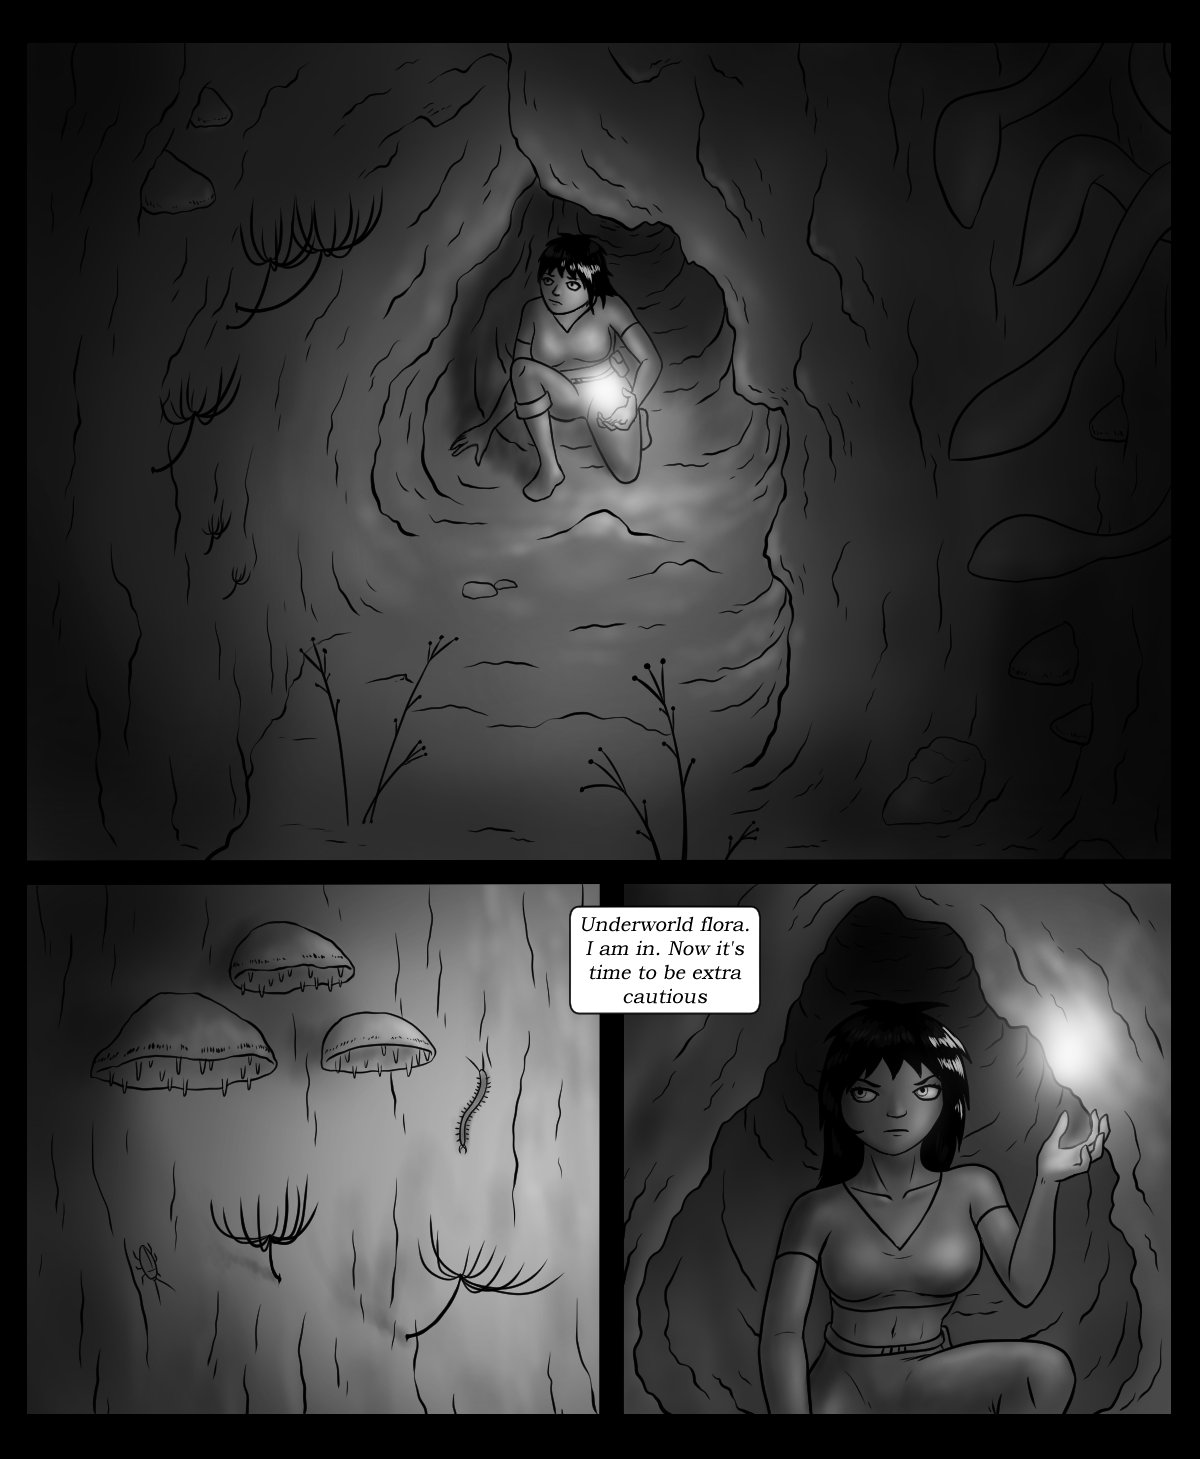 Page 53 - Welcome to the Underworld